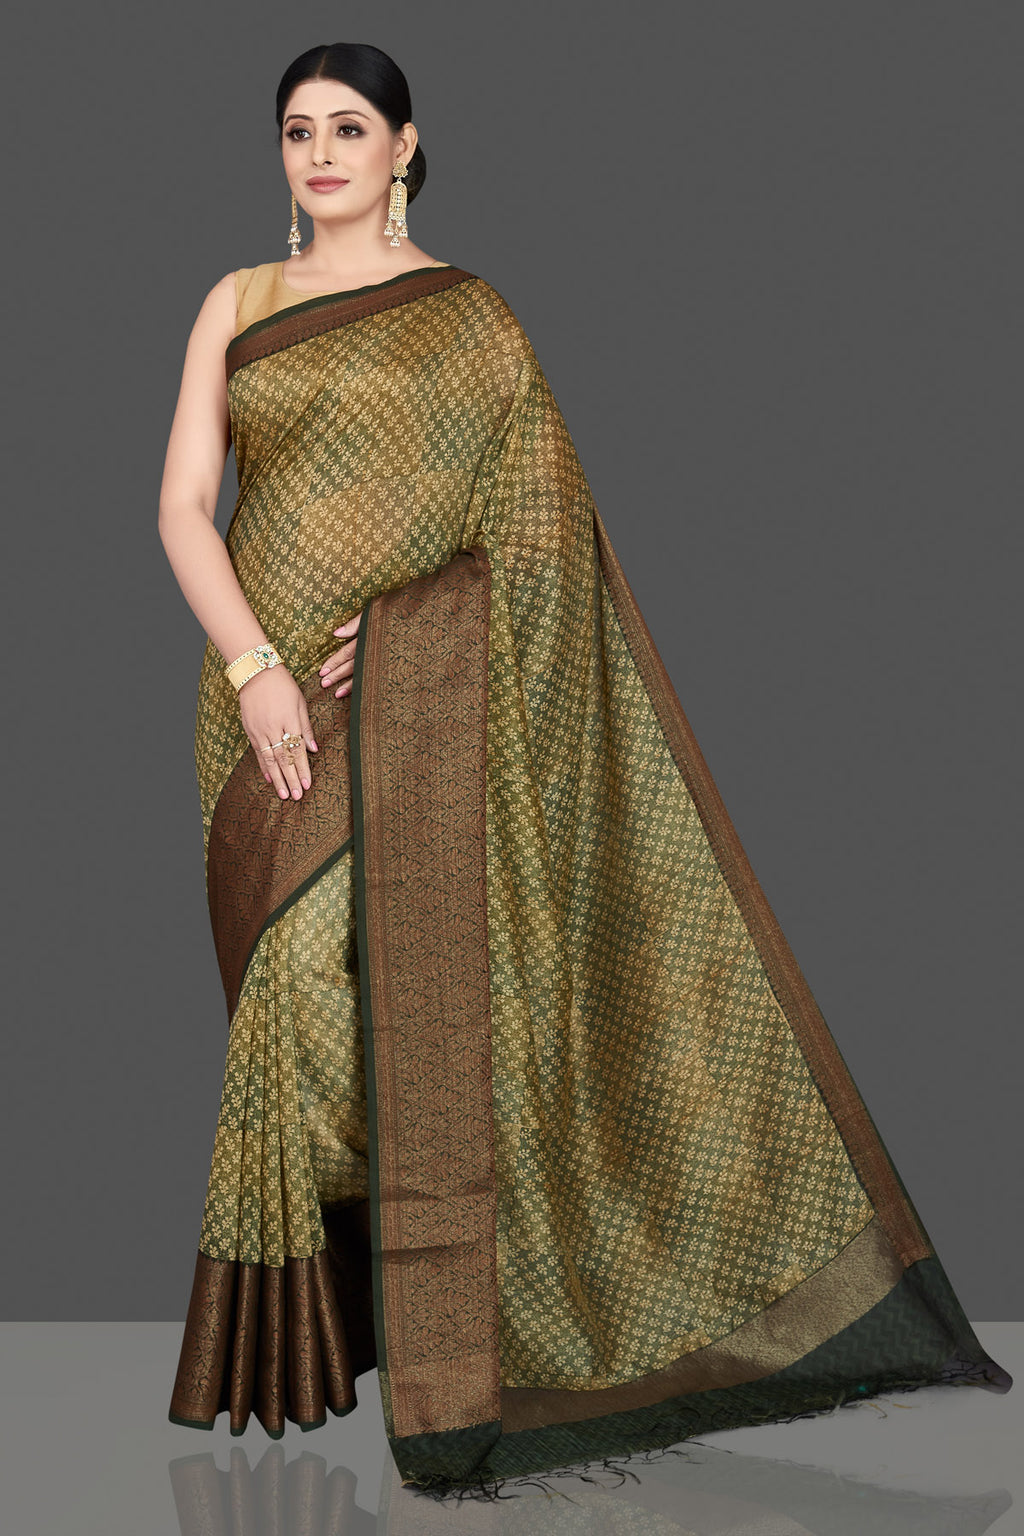 Buy beautiful olive green chanderi cotton silk saree online in USA with antique zari border. Be the center of attraction at weddings and special occasions in exquisite designer sarees, handwoven silk sarees, embroidered saris, pure silk sarees from Pure Elegance Indian fashion store in USA.-full view